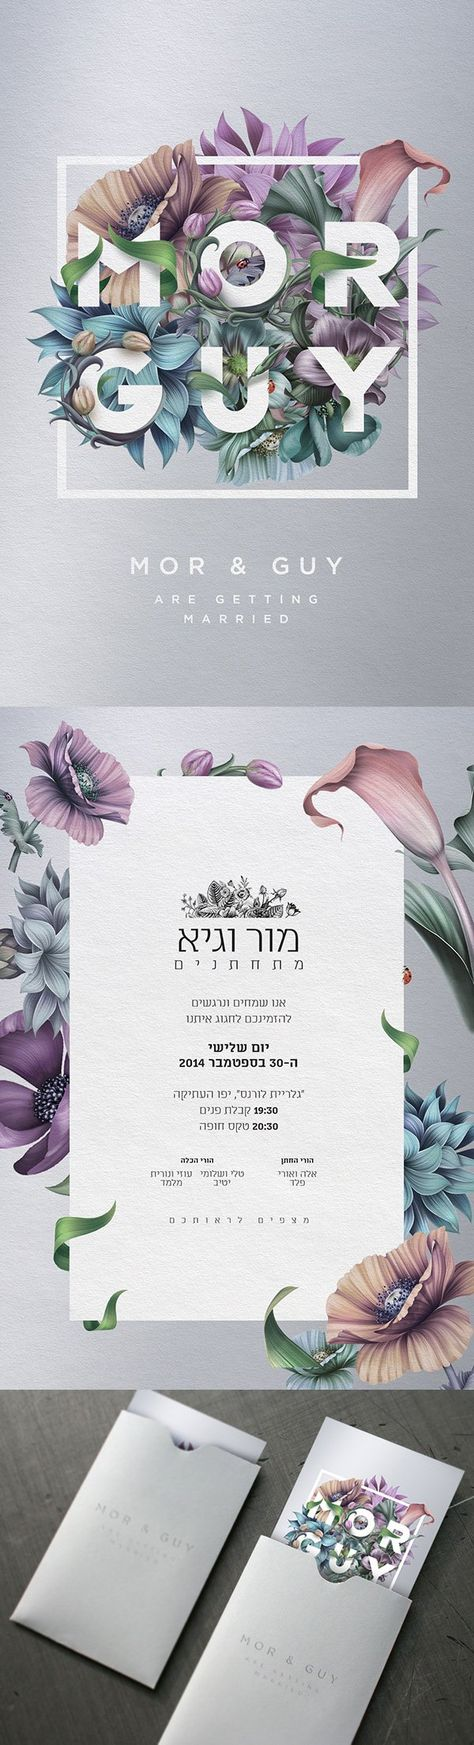 125 Best Wedding Invitations Images On Pinterest Invitations